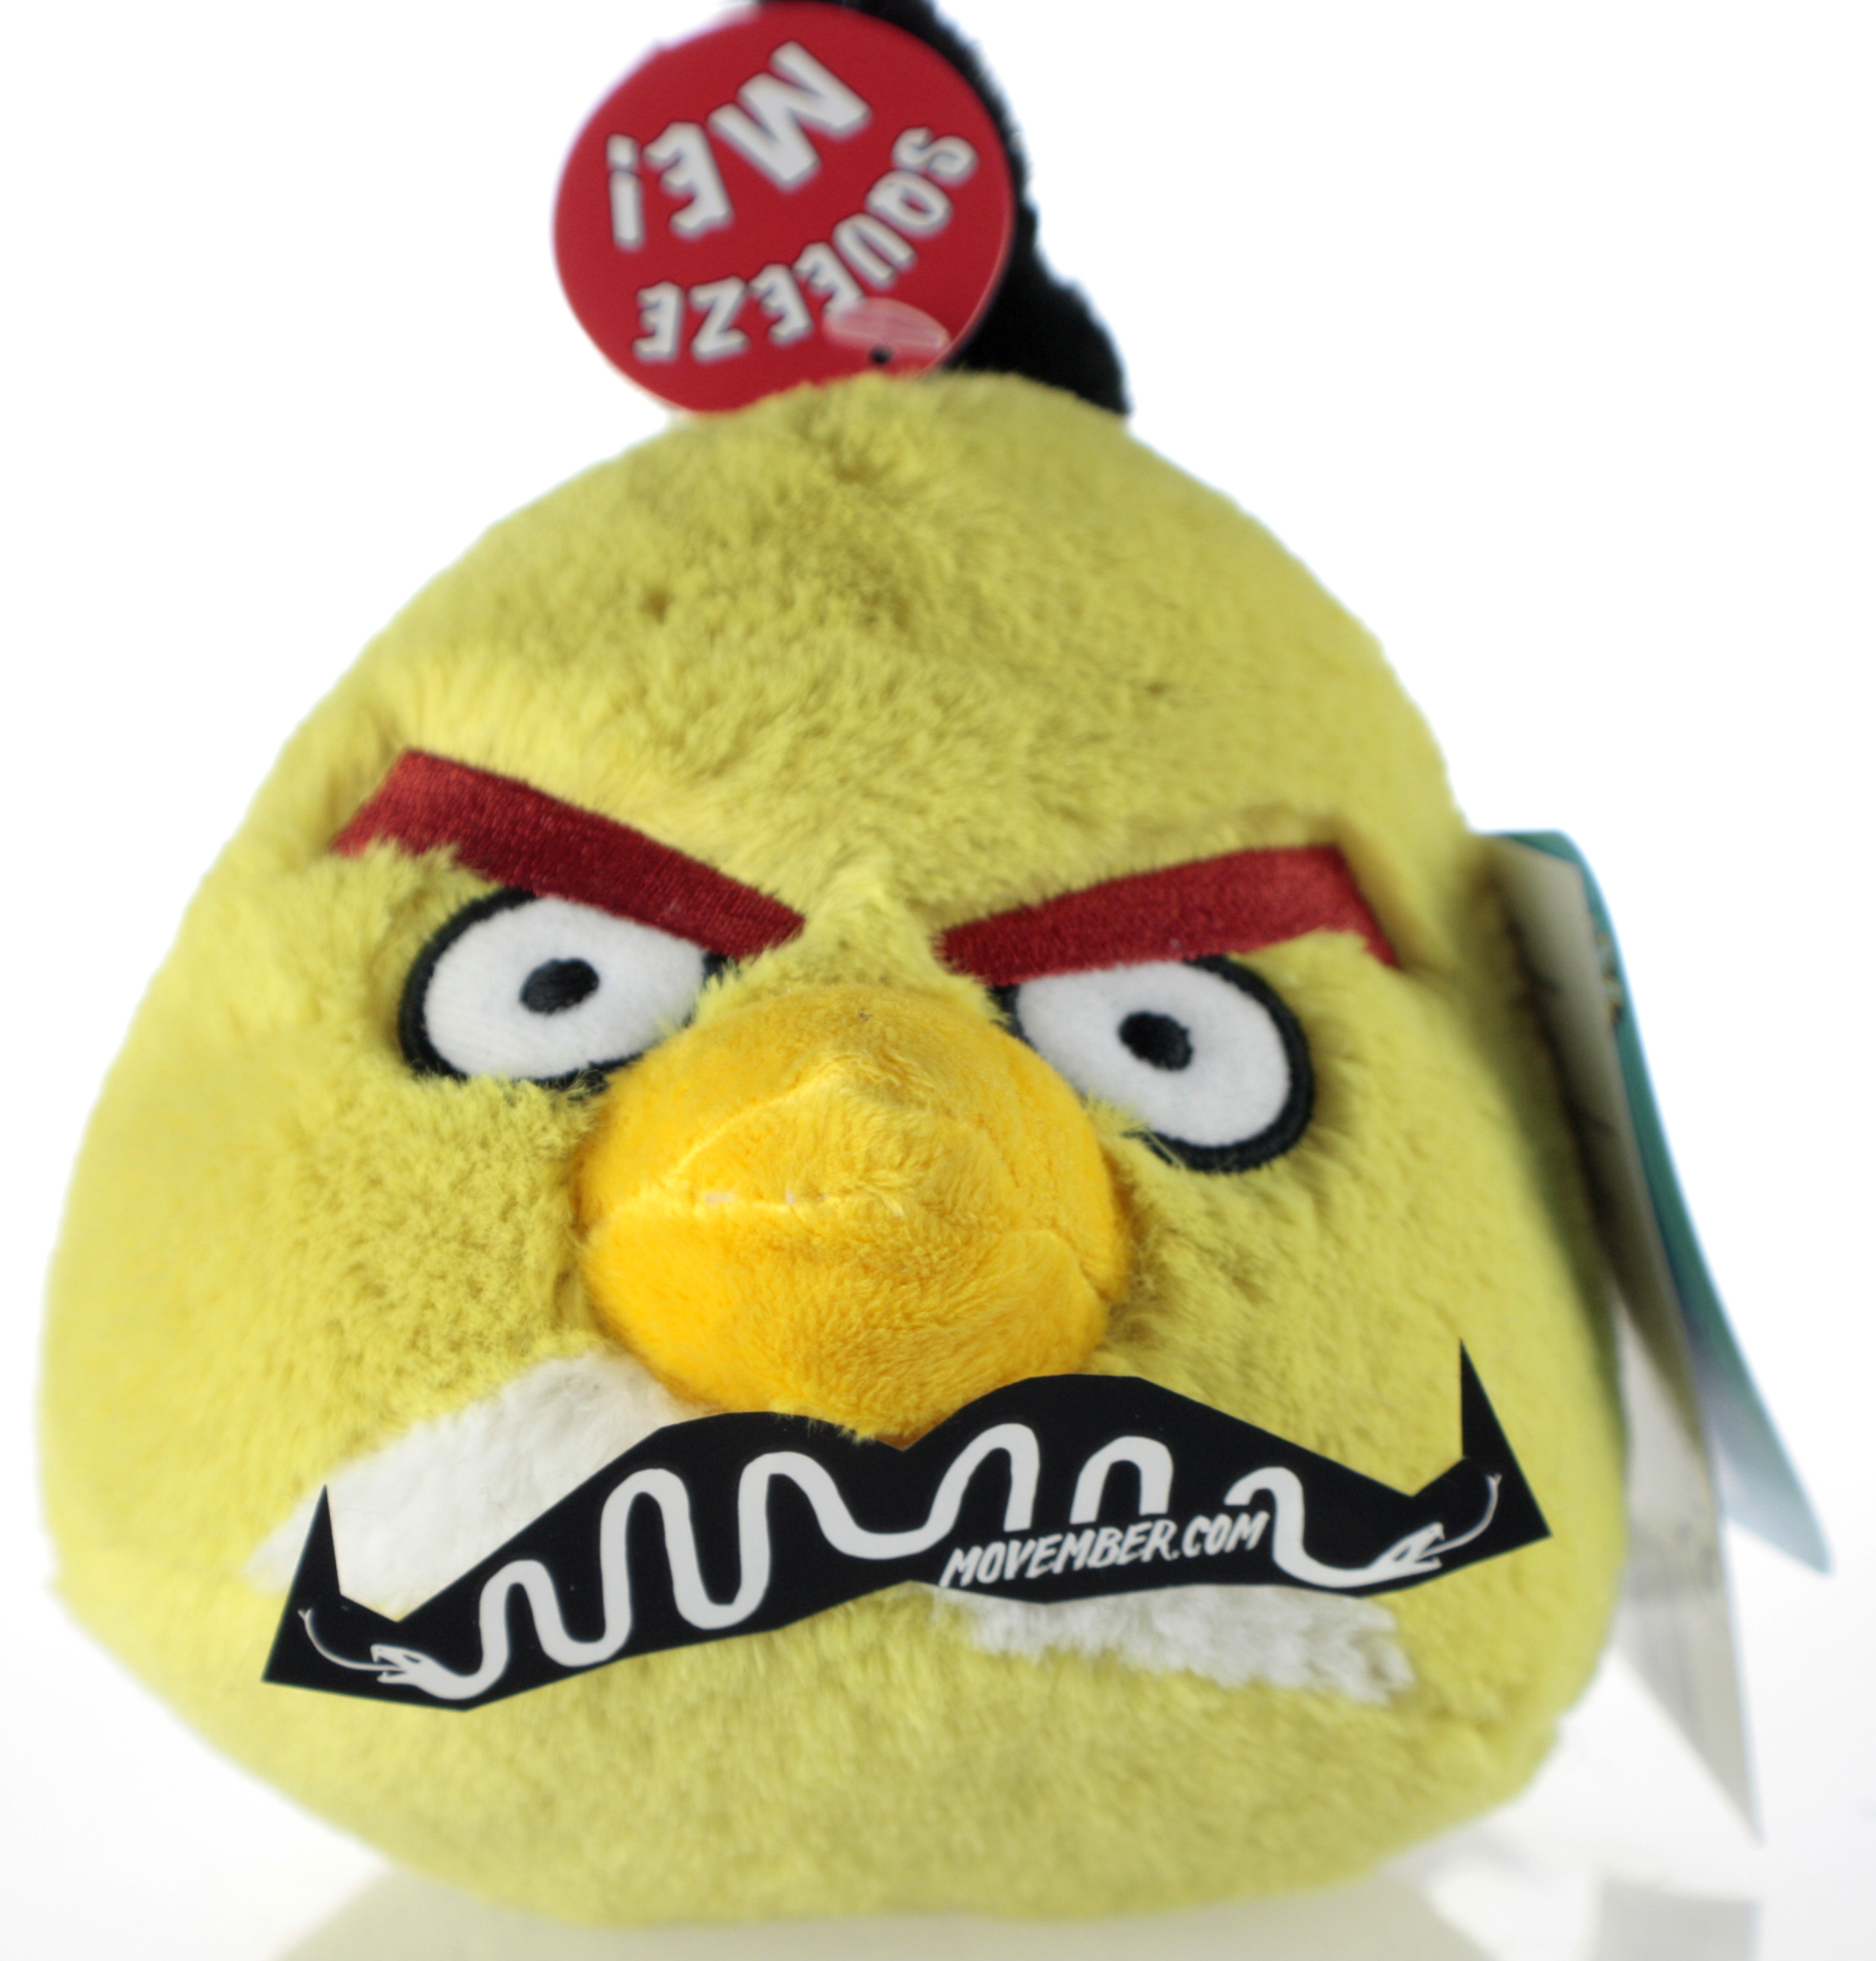 Yellow Angry Bird Soft Toy with a Moustache for Movember